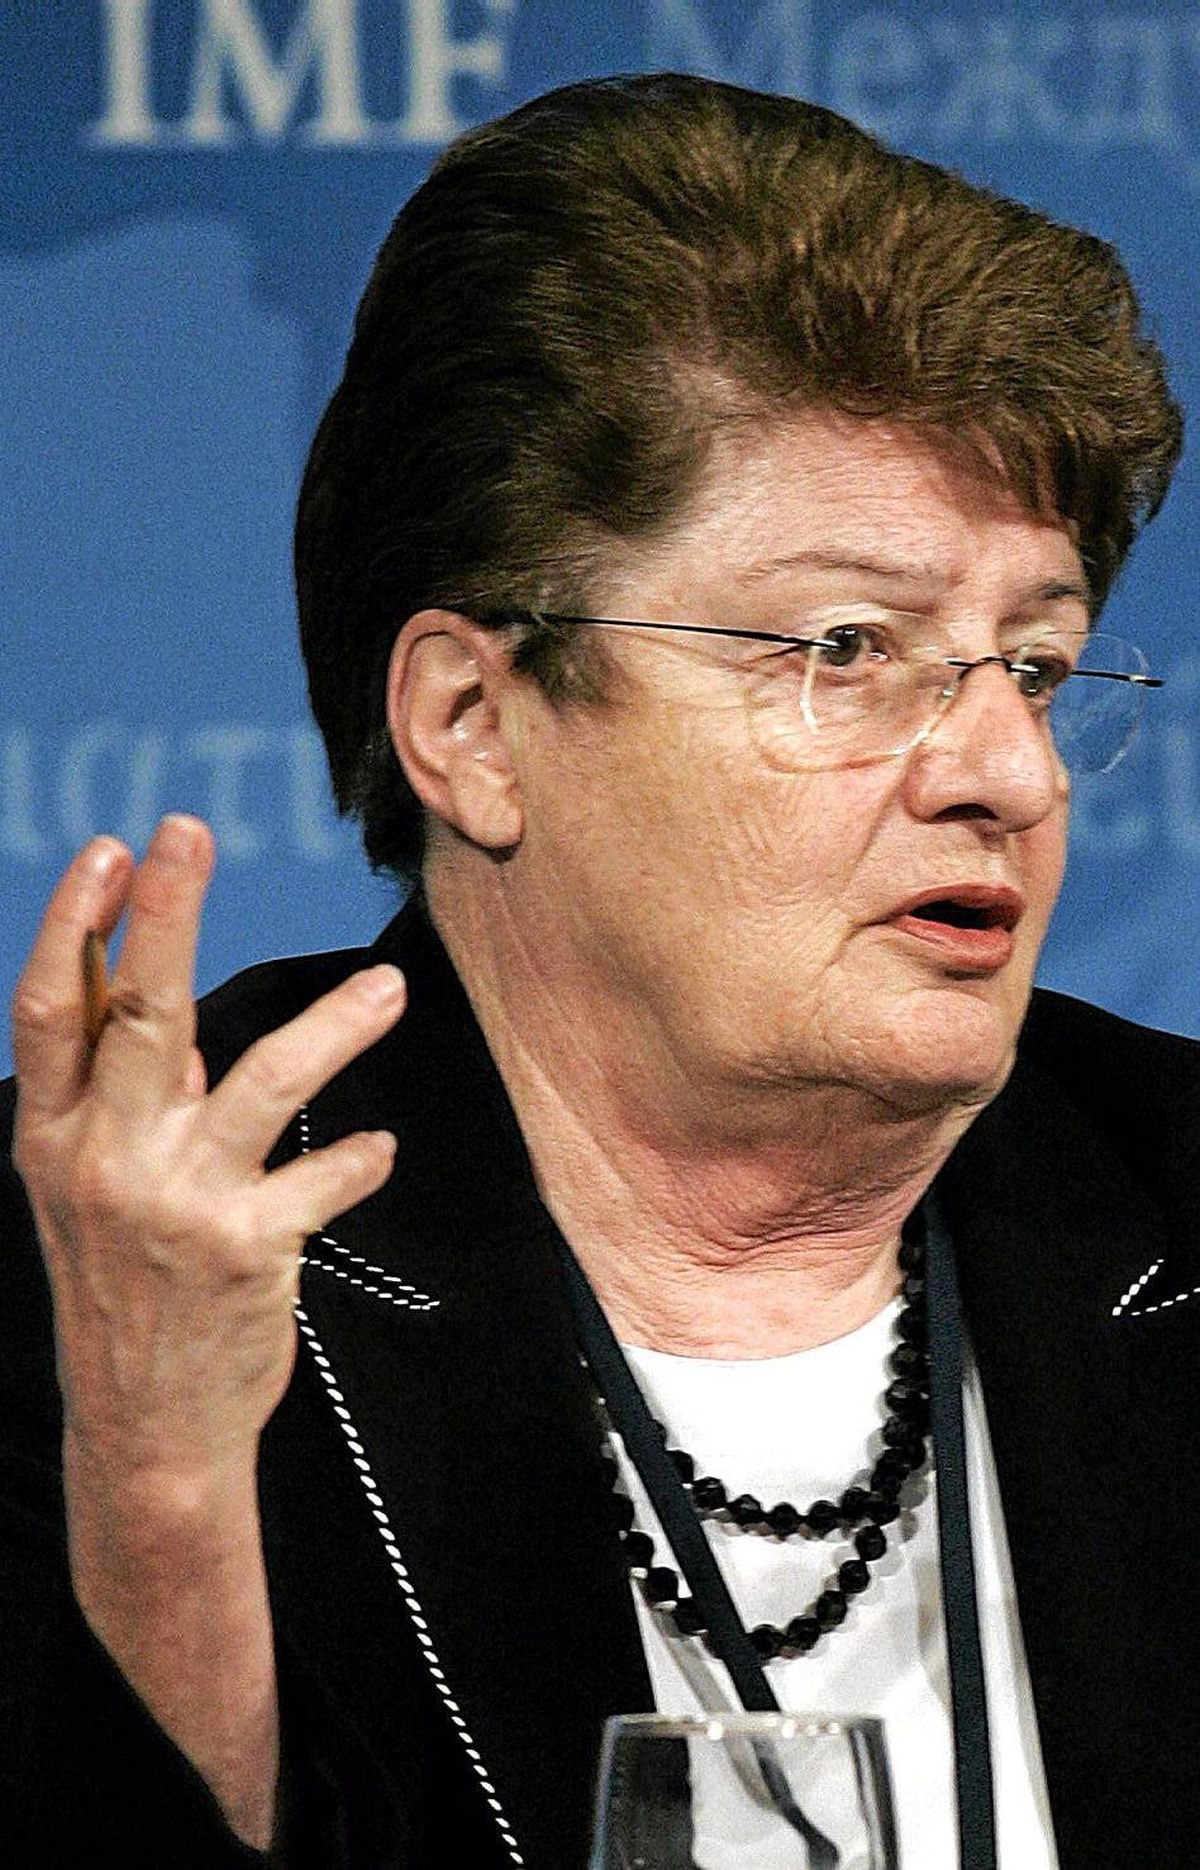 Anne Osborn Krueger Economist and former World Bank chief economist, she also was the IMF?s first deputy managing director from 2001 to 2006. She is also past president of the American Economic Association.